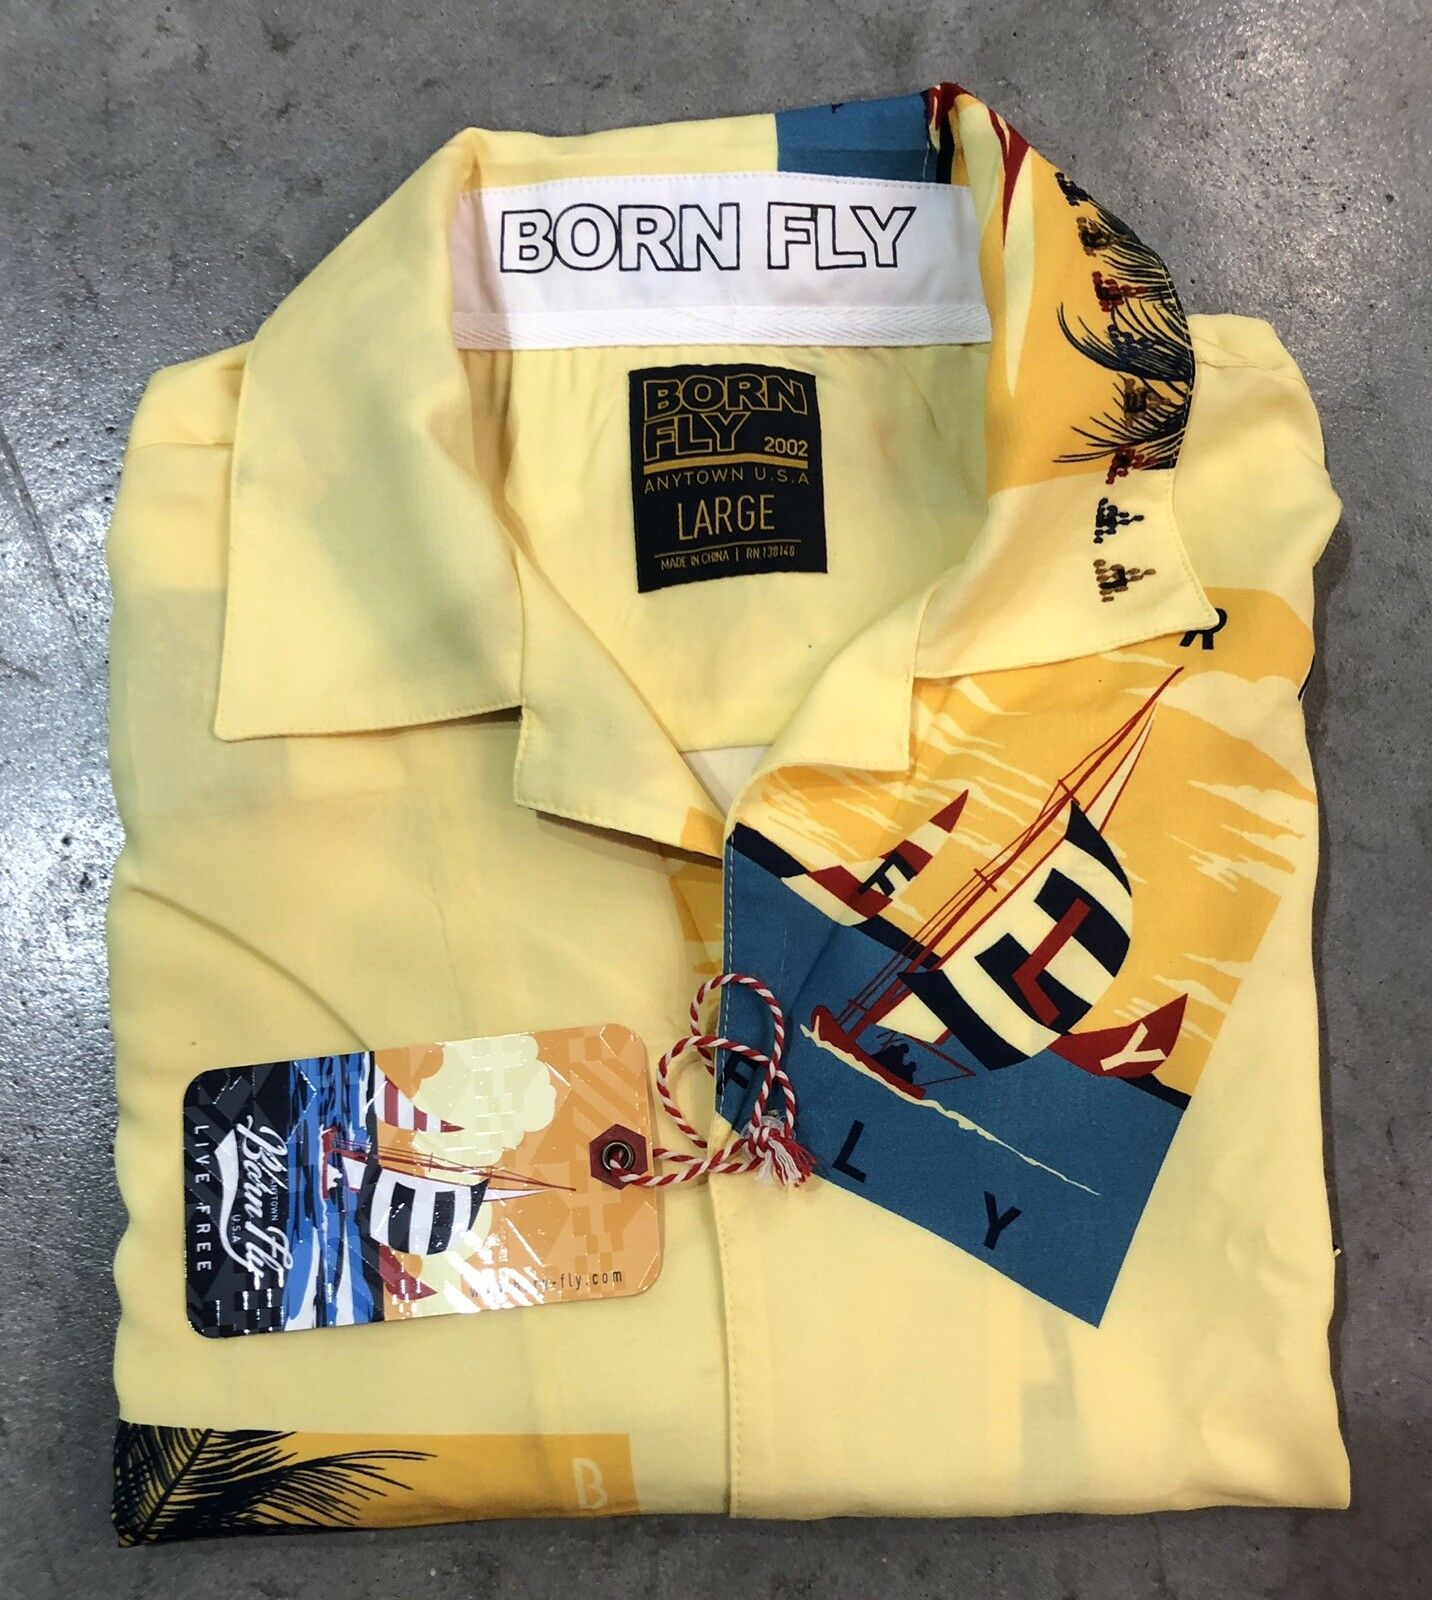 Born Fly Live Free Button Up In Yellw Sz. Large Retail   NWT 100% Authentic